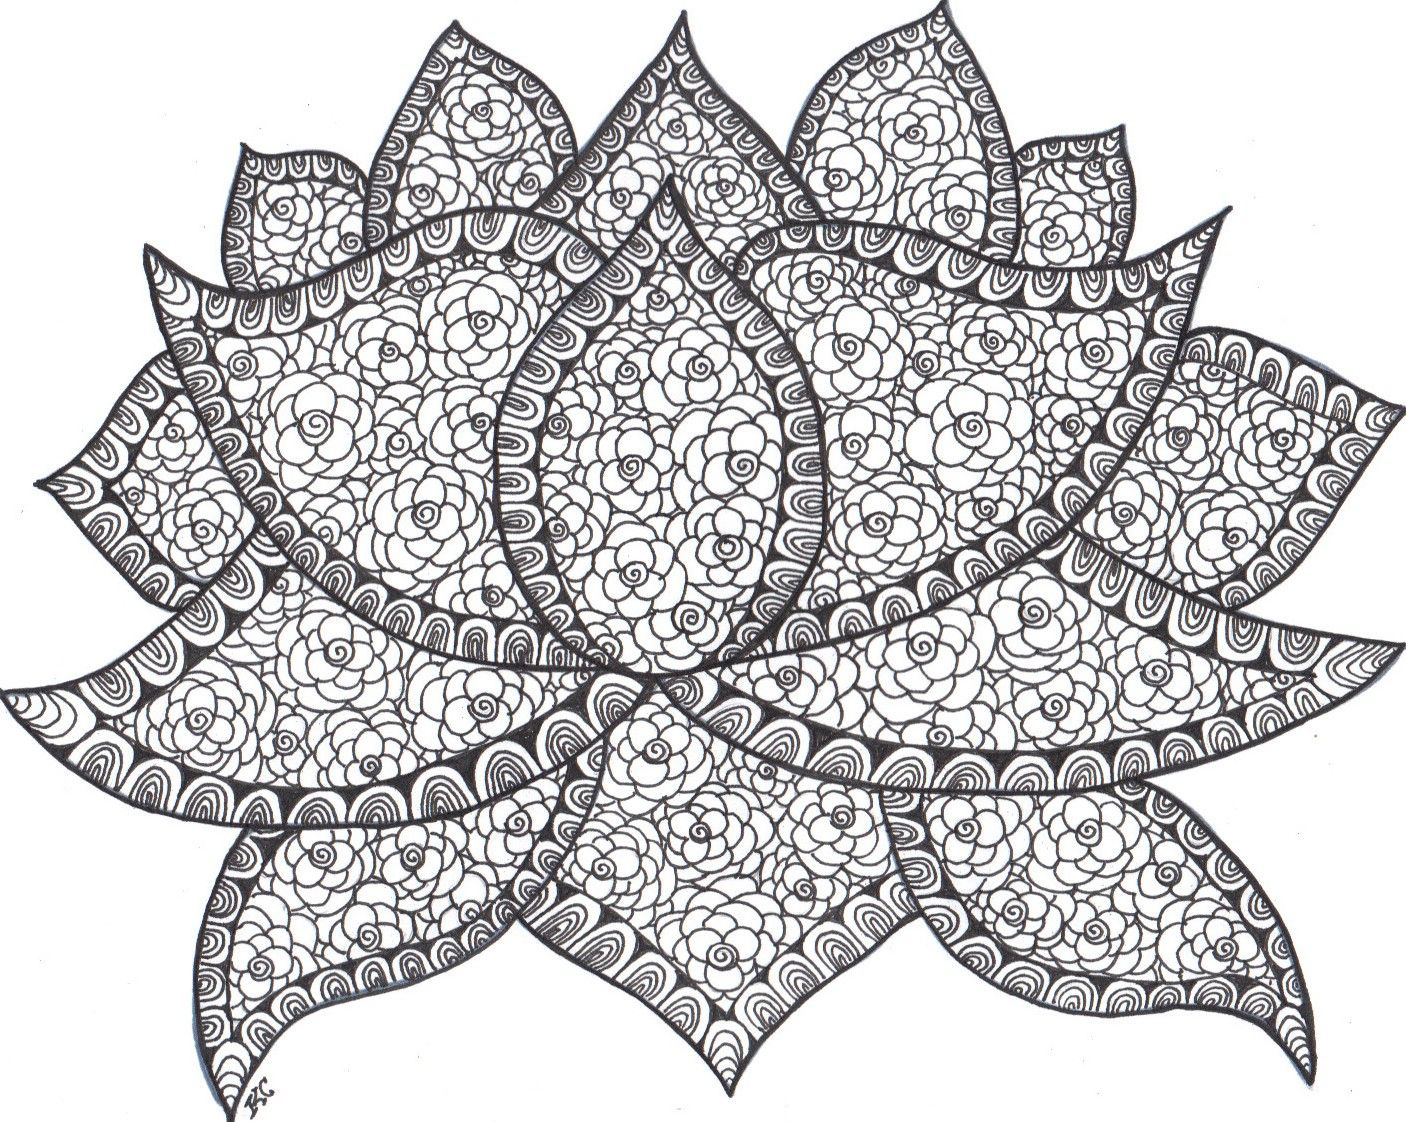 Lotus designs coloring book - Lotus Pattern I Just Learned Then Zentangled It Patterns From Http Tanglepatterns Colouring Pagescoloring Bookadult